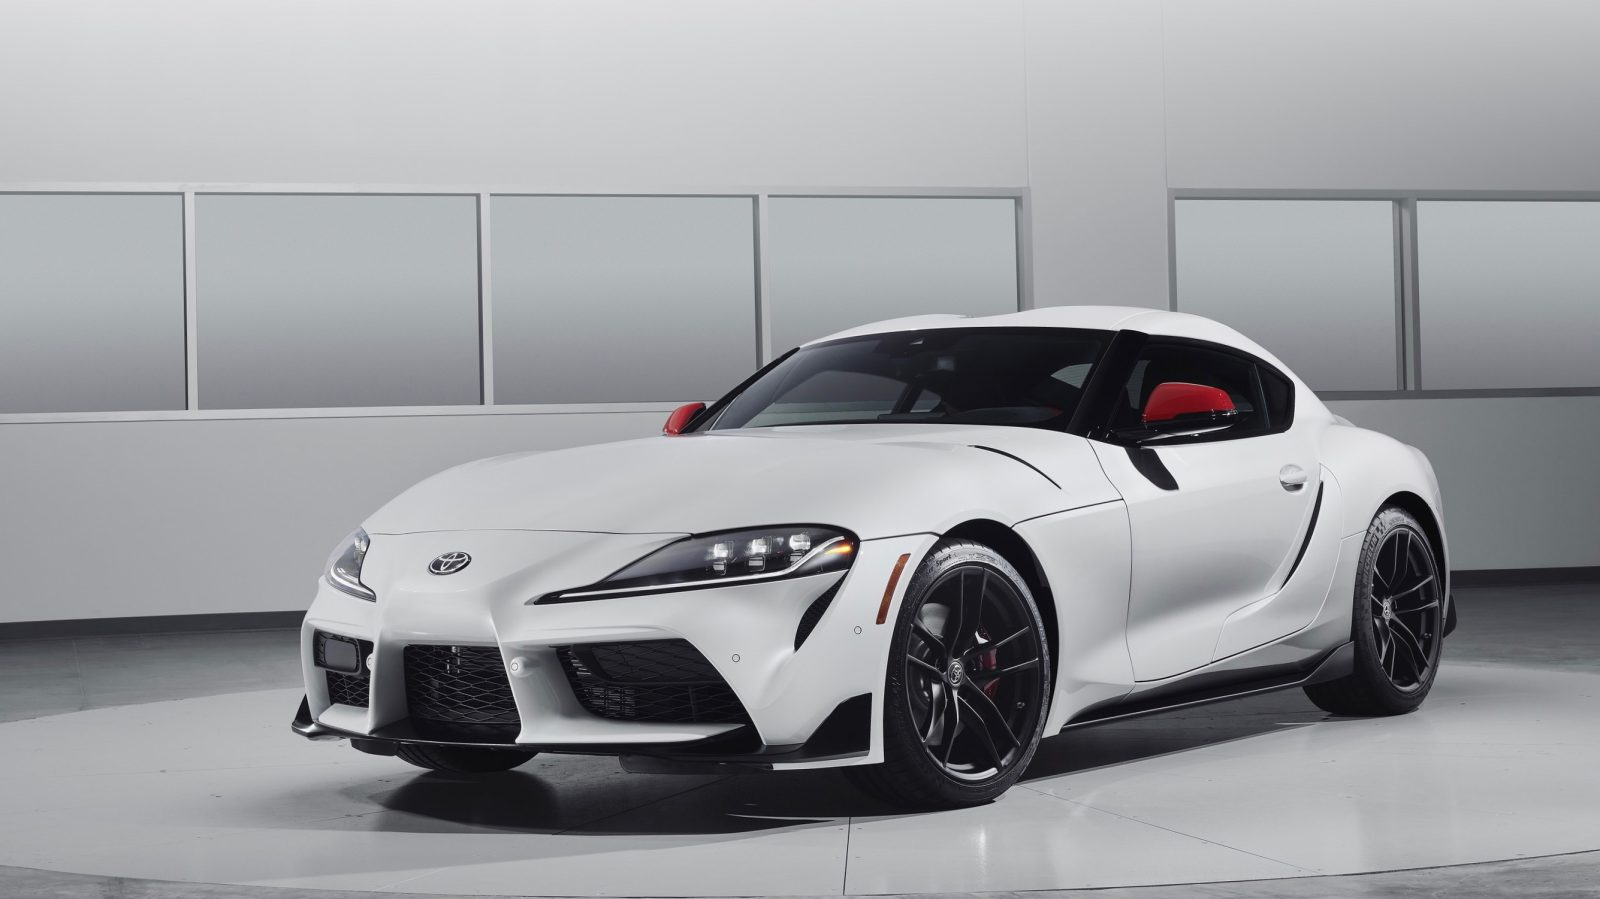 Toyota S 2020 Gr Supra Will Support Wireless Carplay But Only As